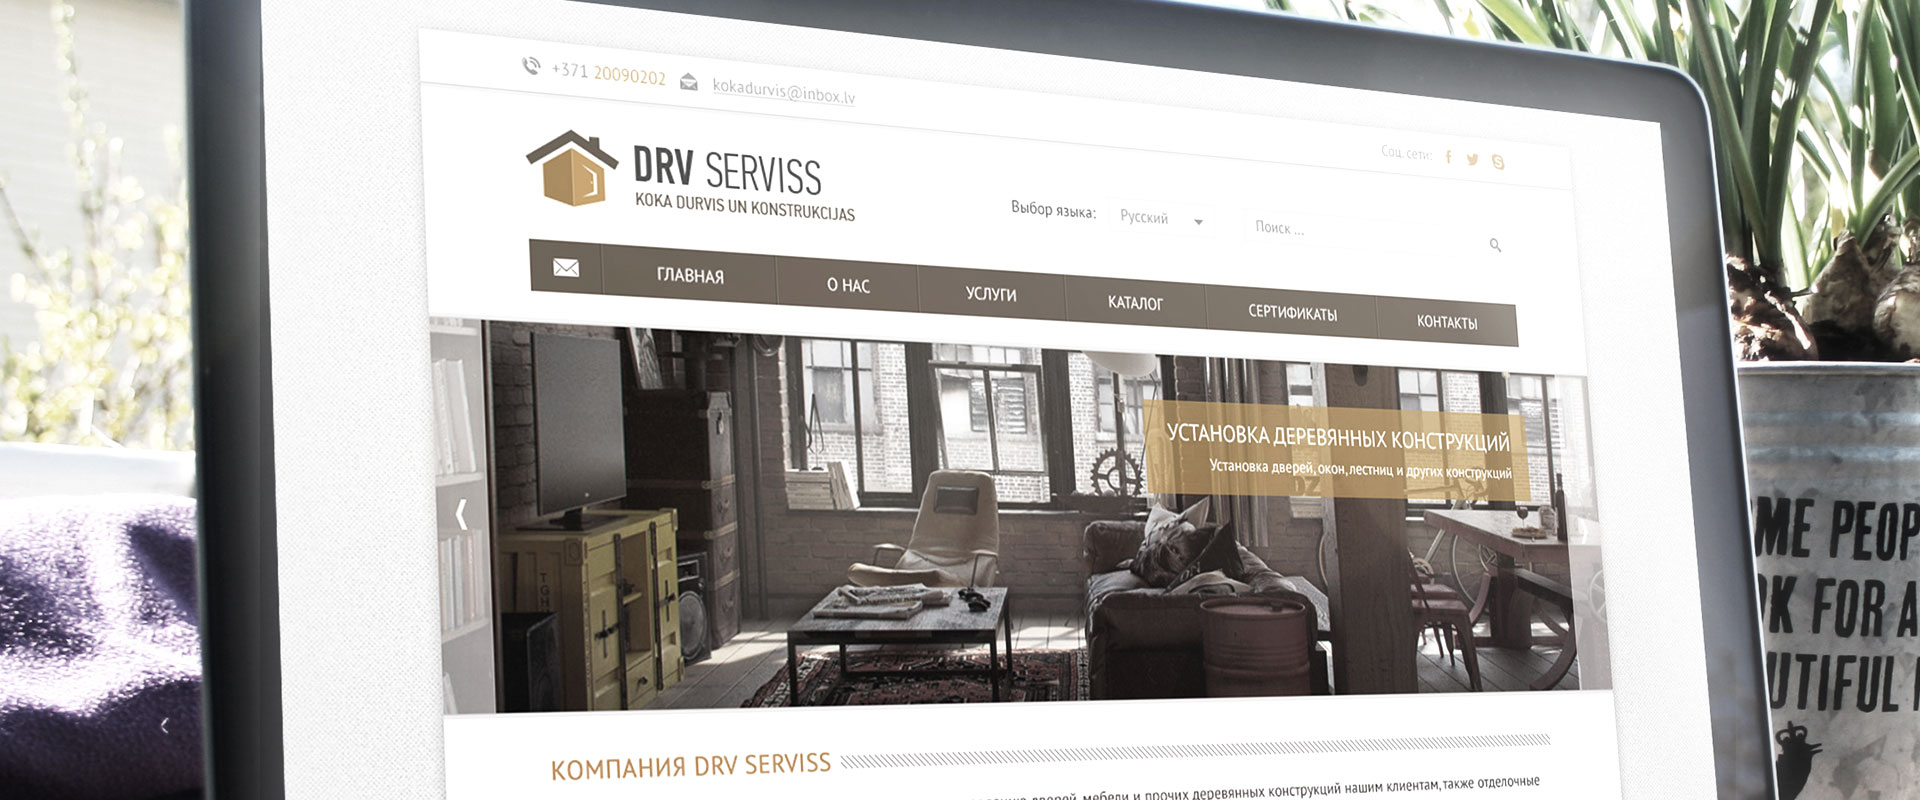 drv-website-1